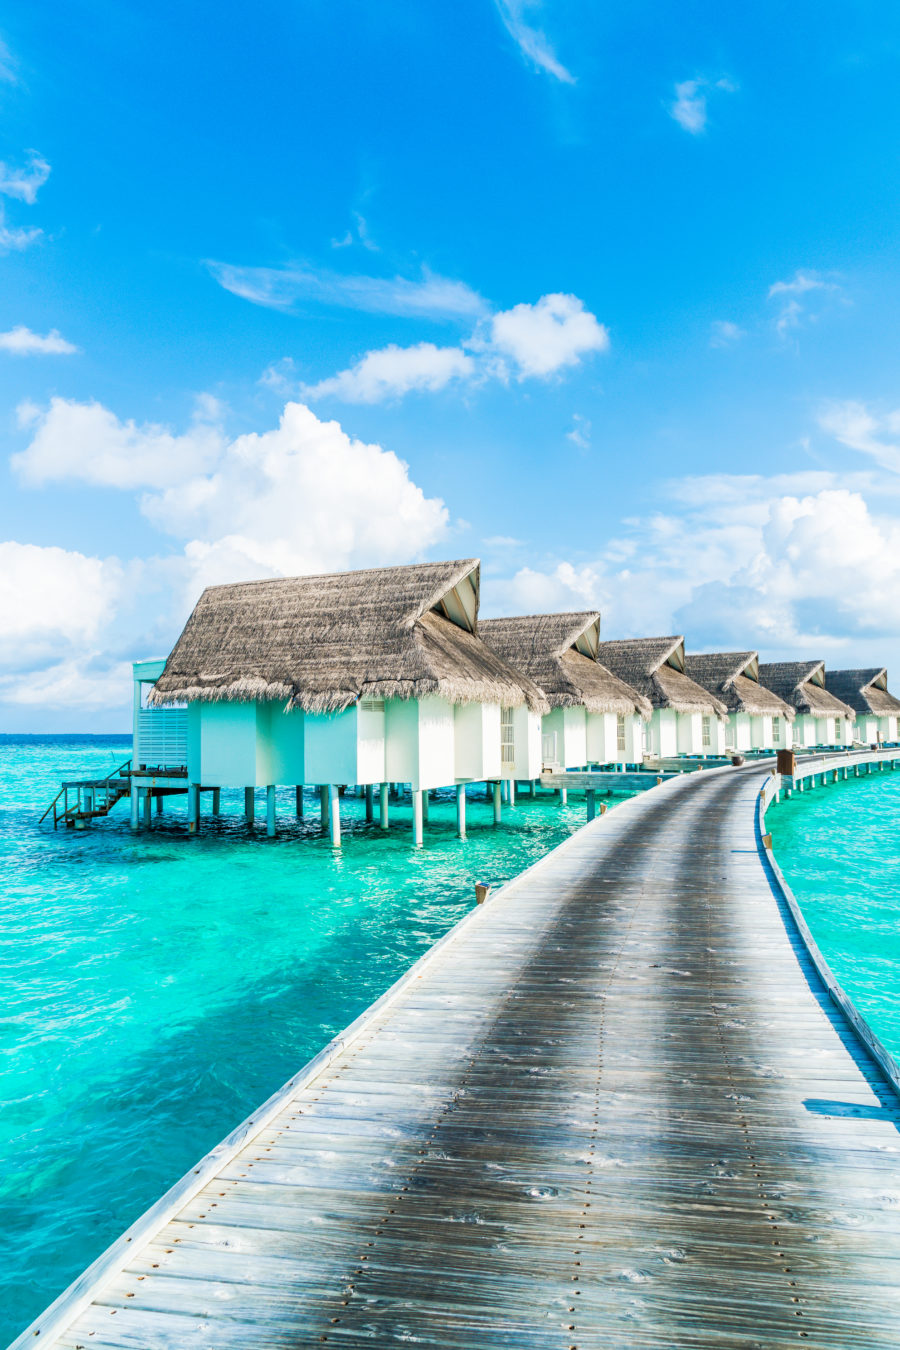 Tropical maldives resort hotel and island with beach and sea for holiday vacation concept Premium Photo